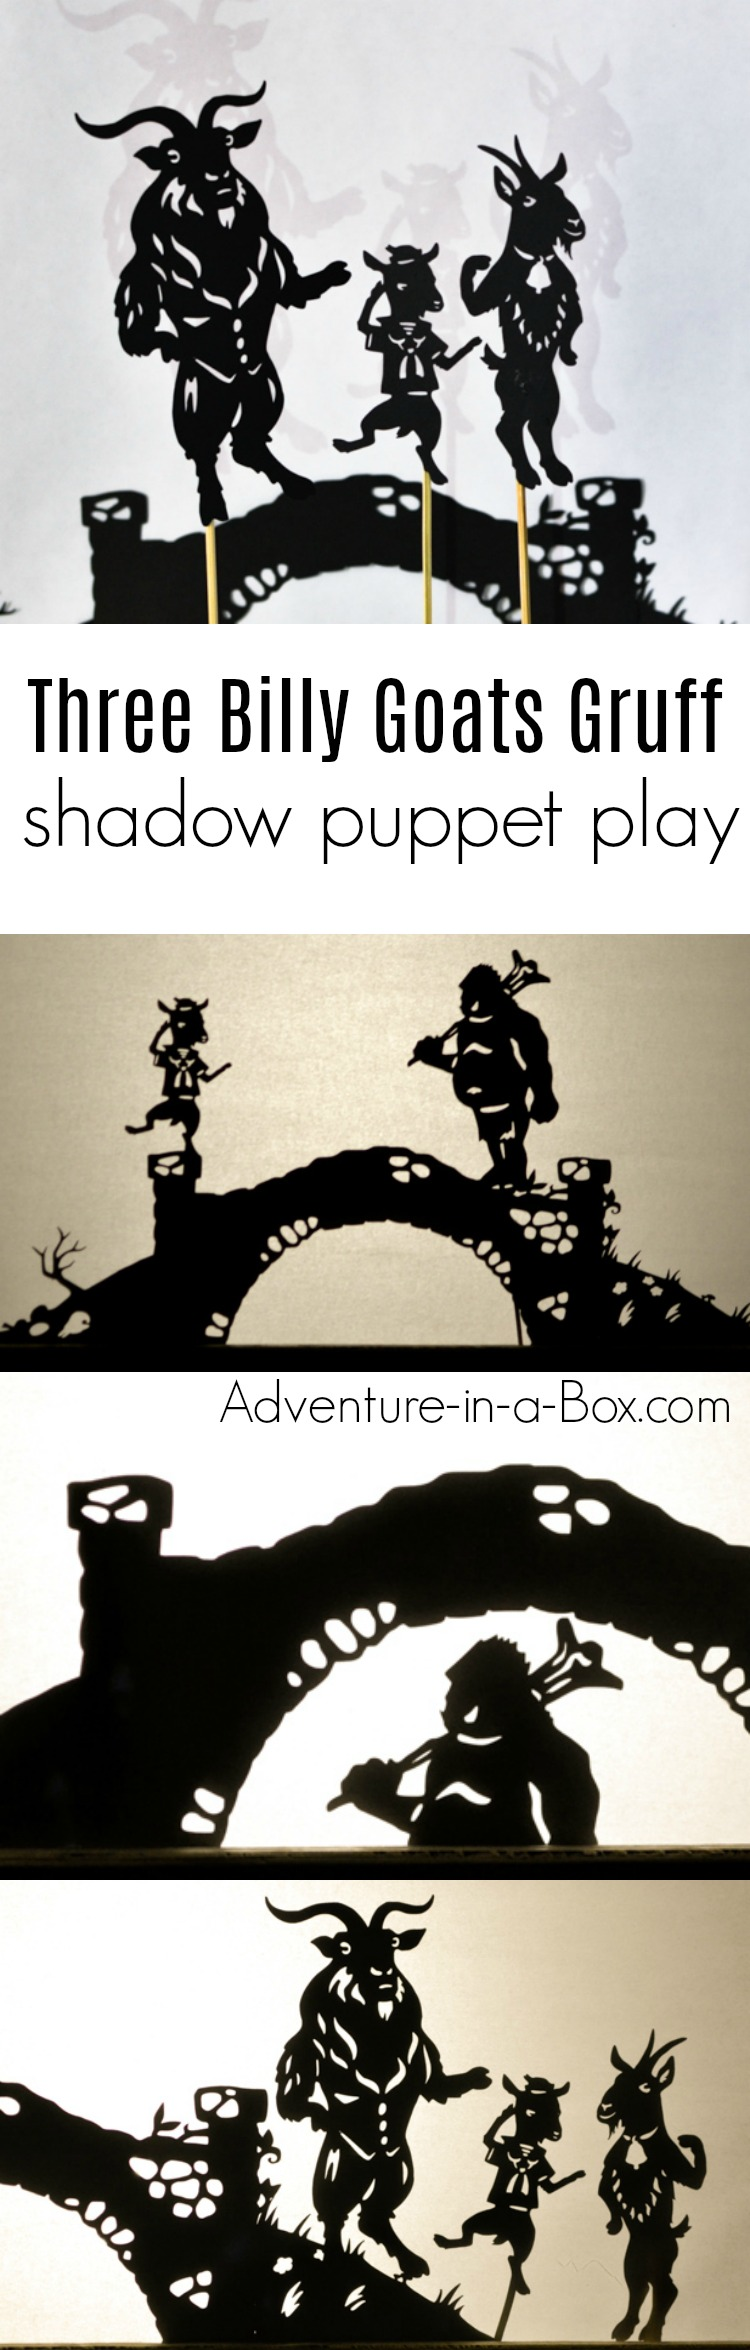 Based on the Norwegian fairy-tale, these printable shadow puppets will let your kids make their version of Three Billy Goats Gruff and stage a shadow play at home or in the classroom!